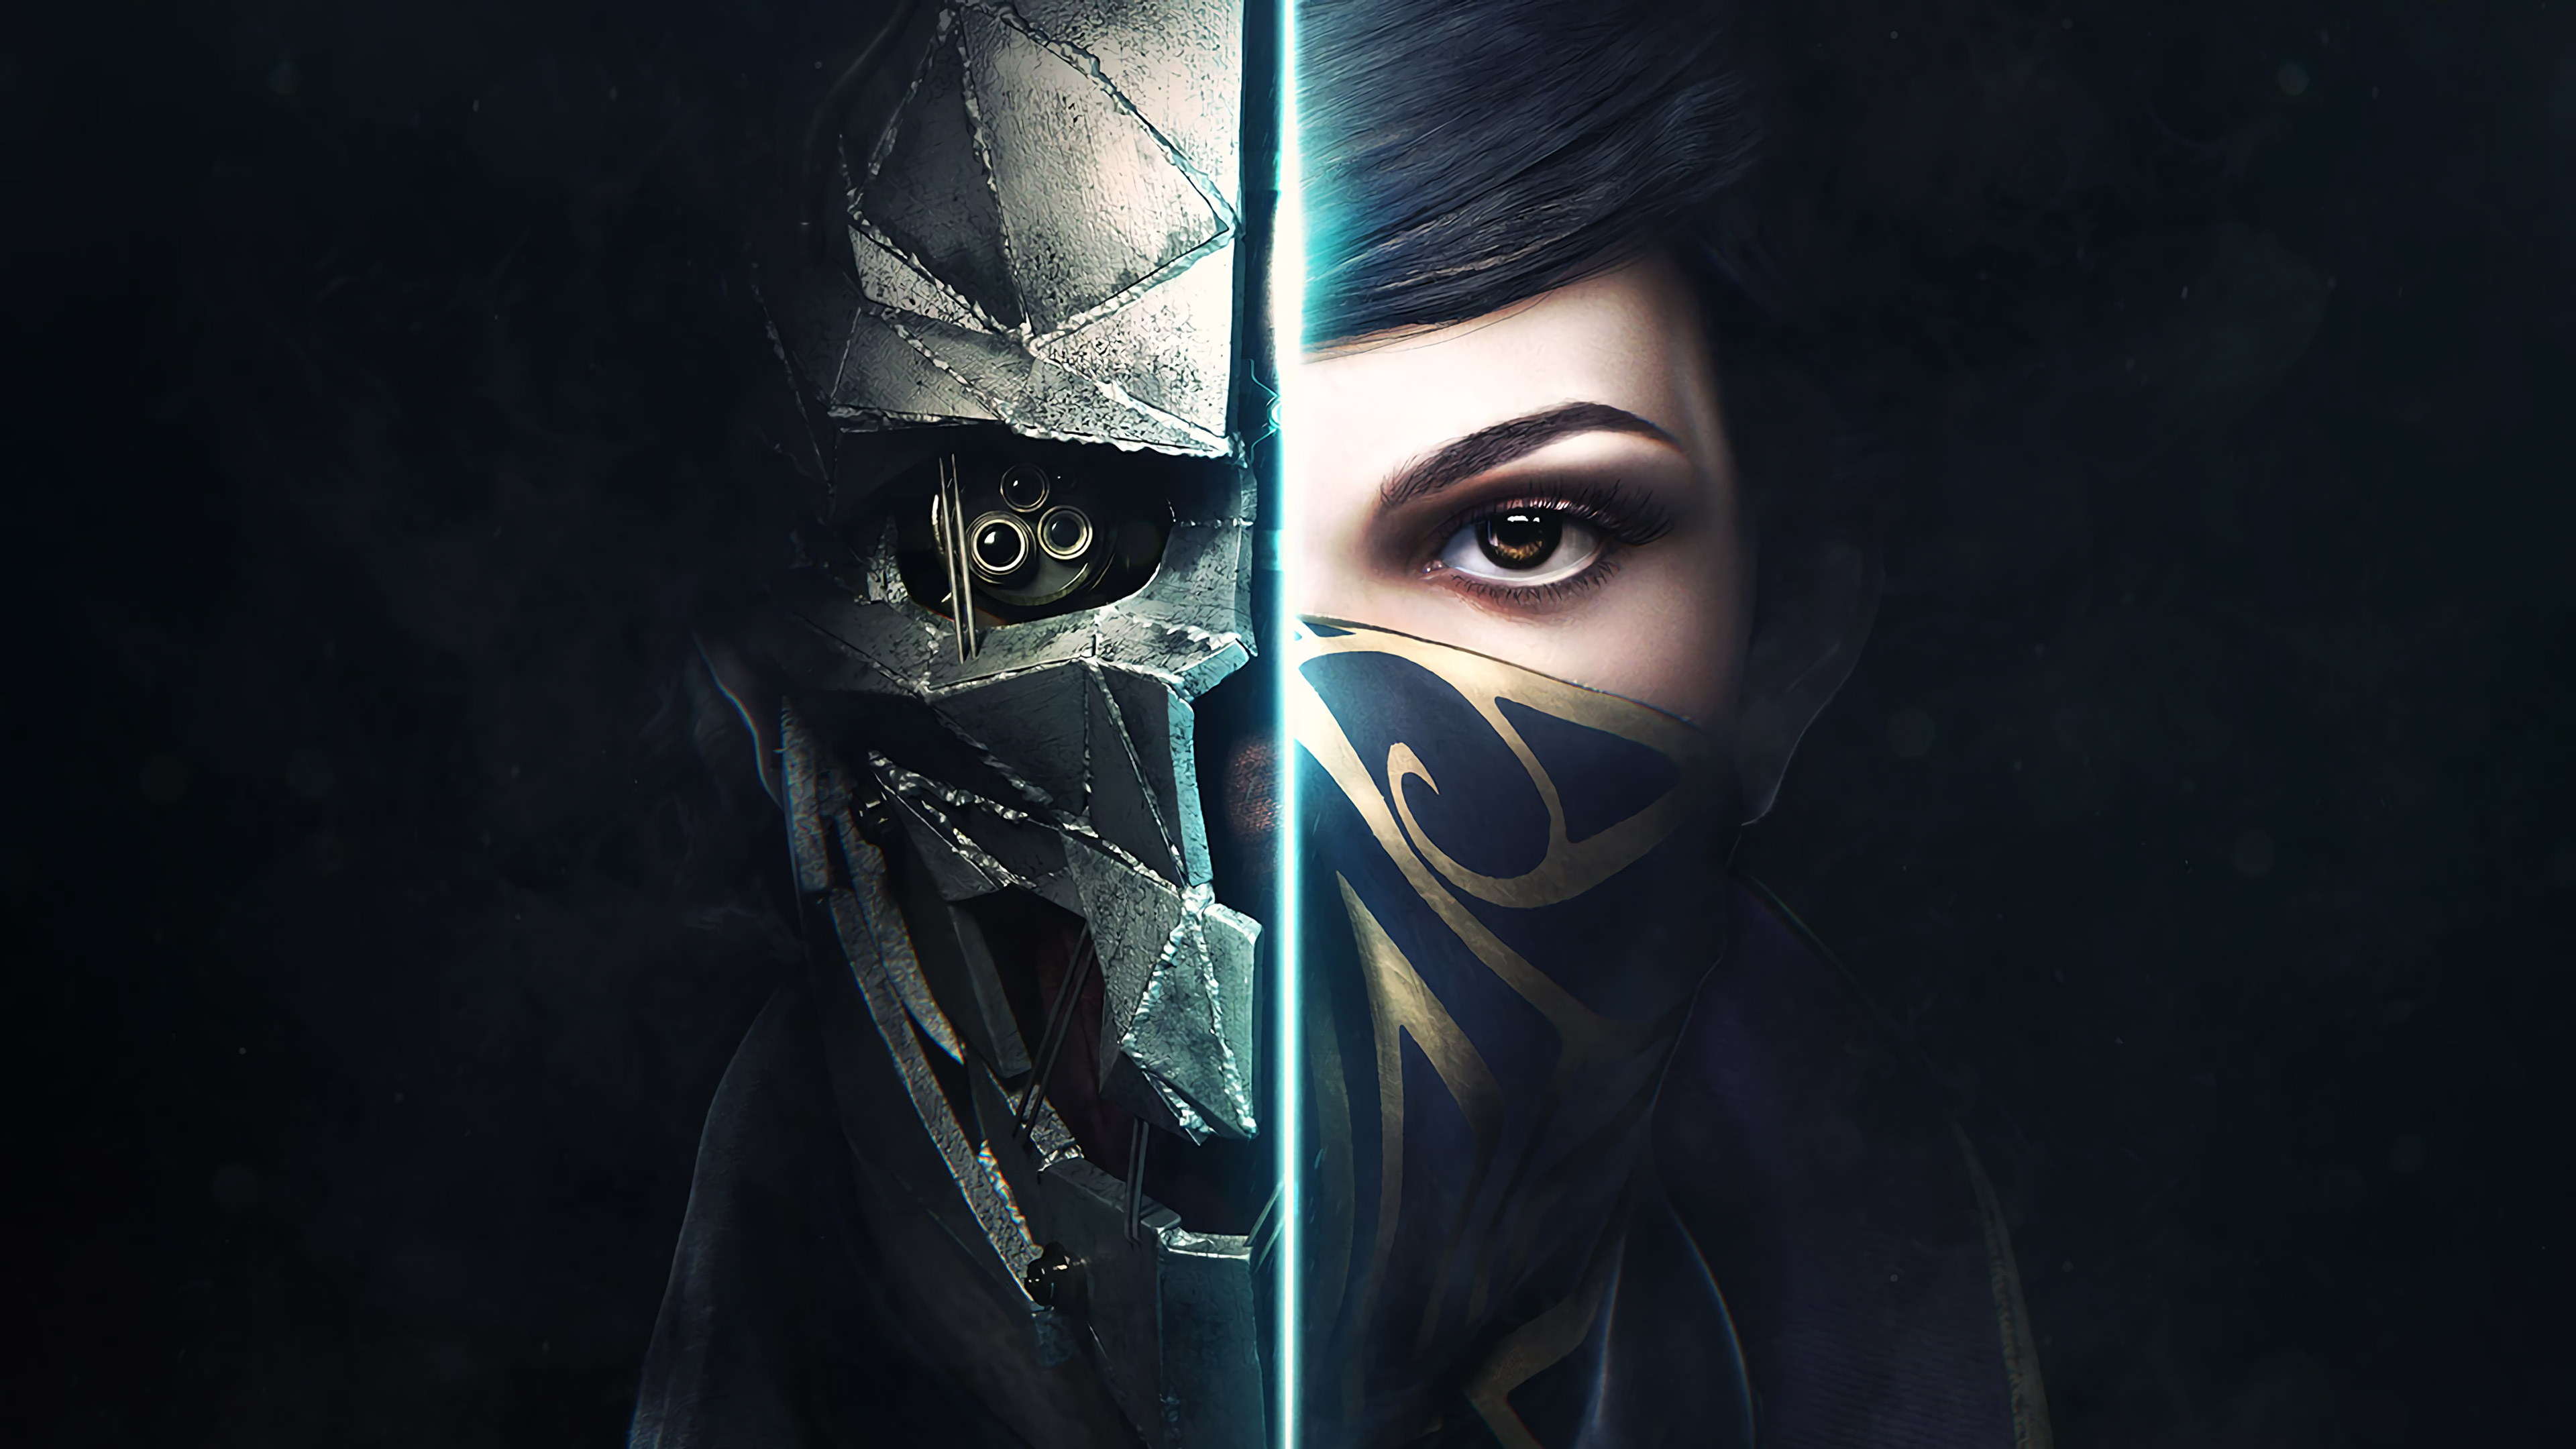 Dishonored 2 4k Game, HD Games, 4k Wallpapers, Images